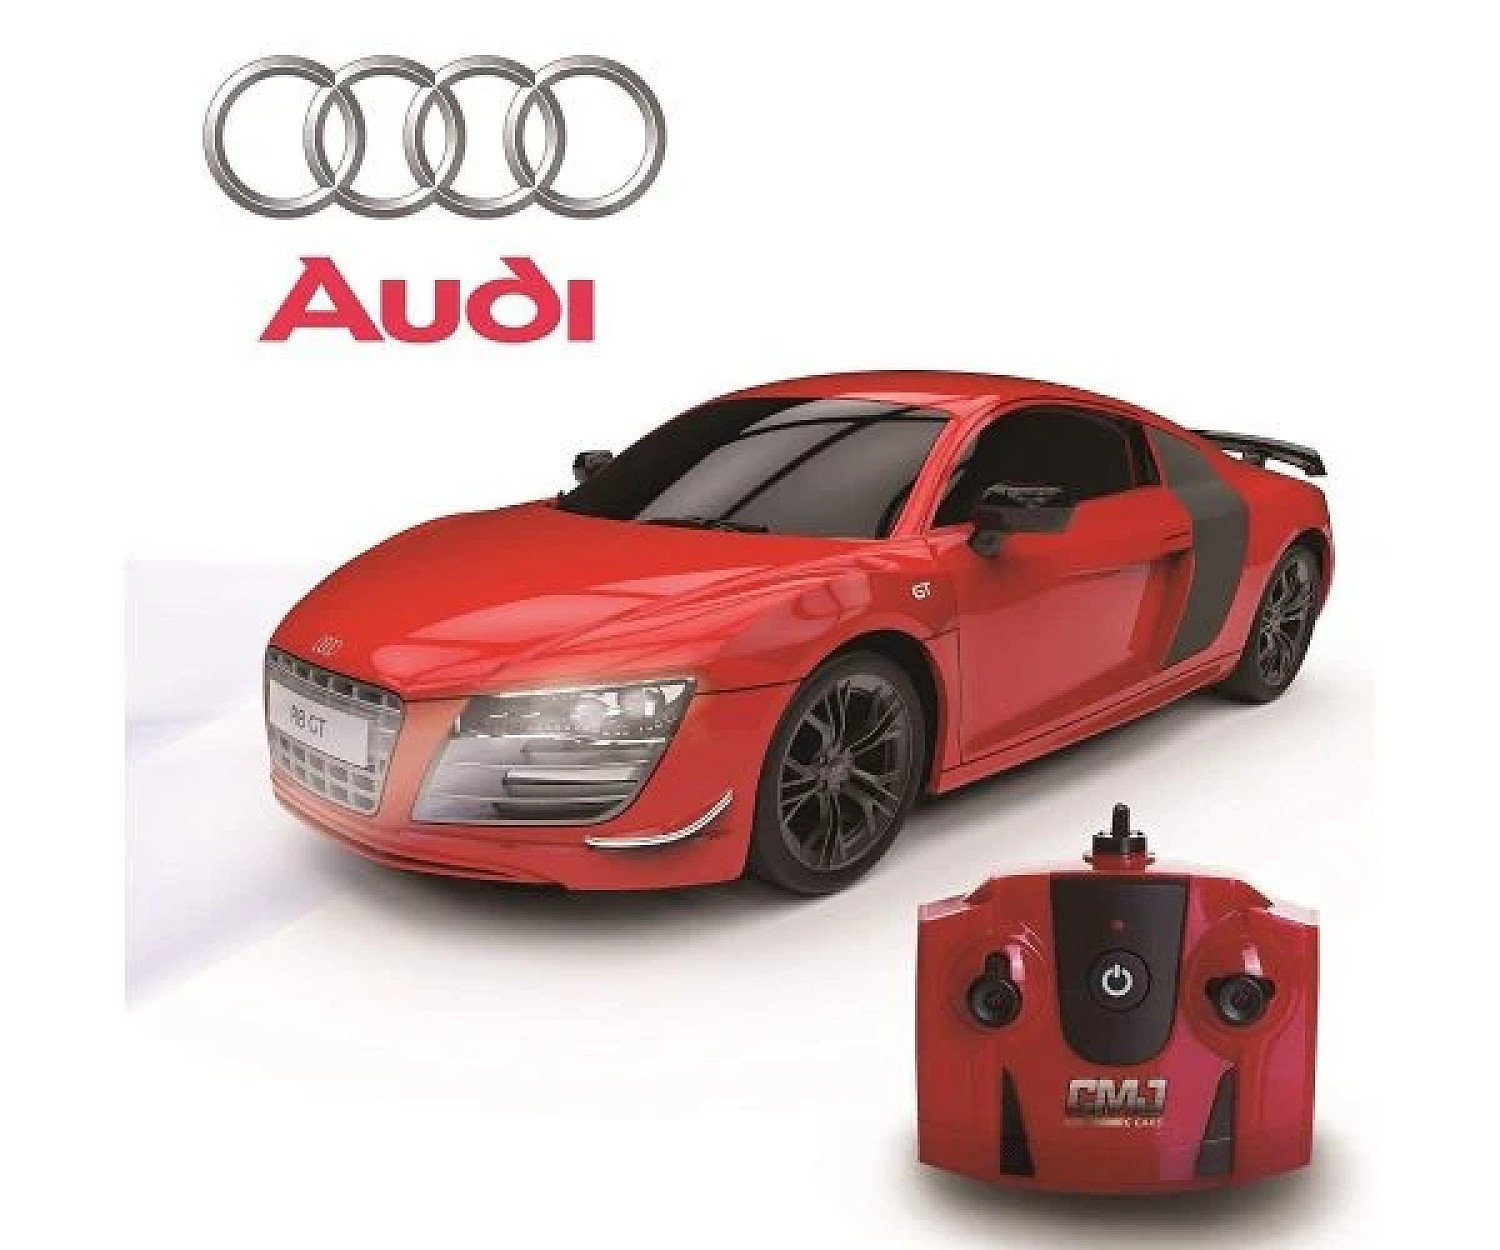 1:24 Scale RC Audi R8 GT Red Free Postage